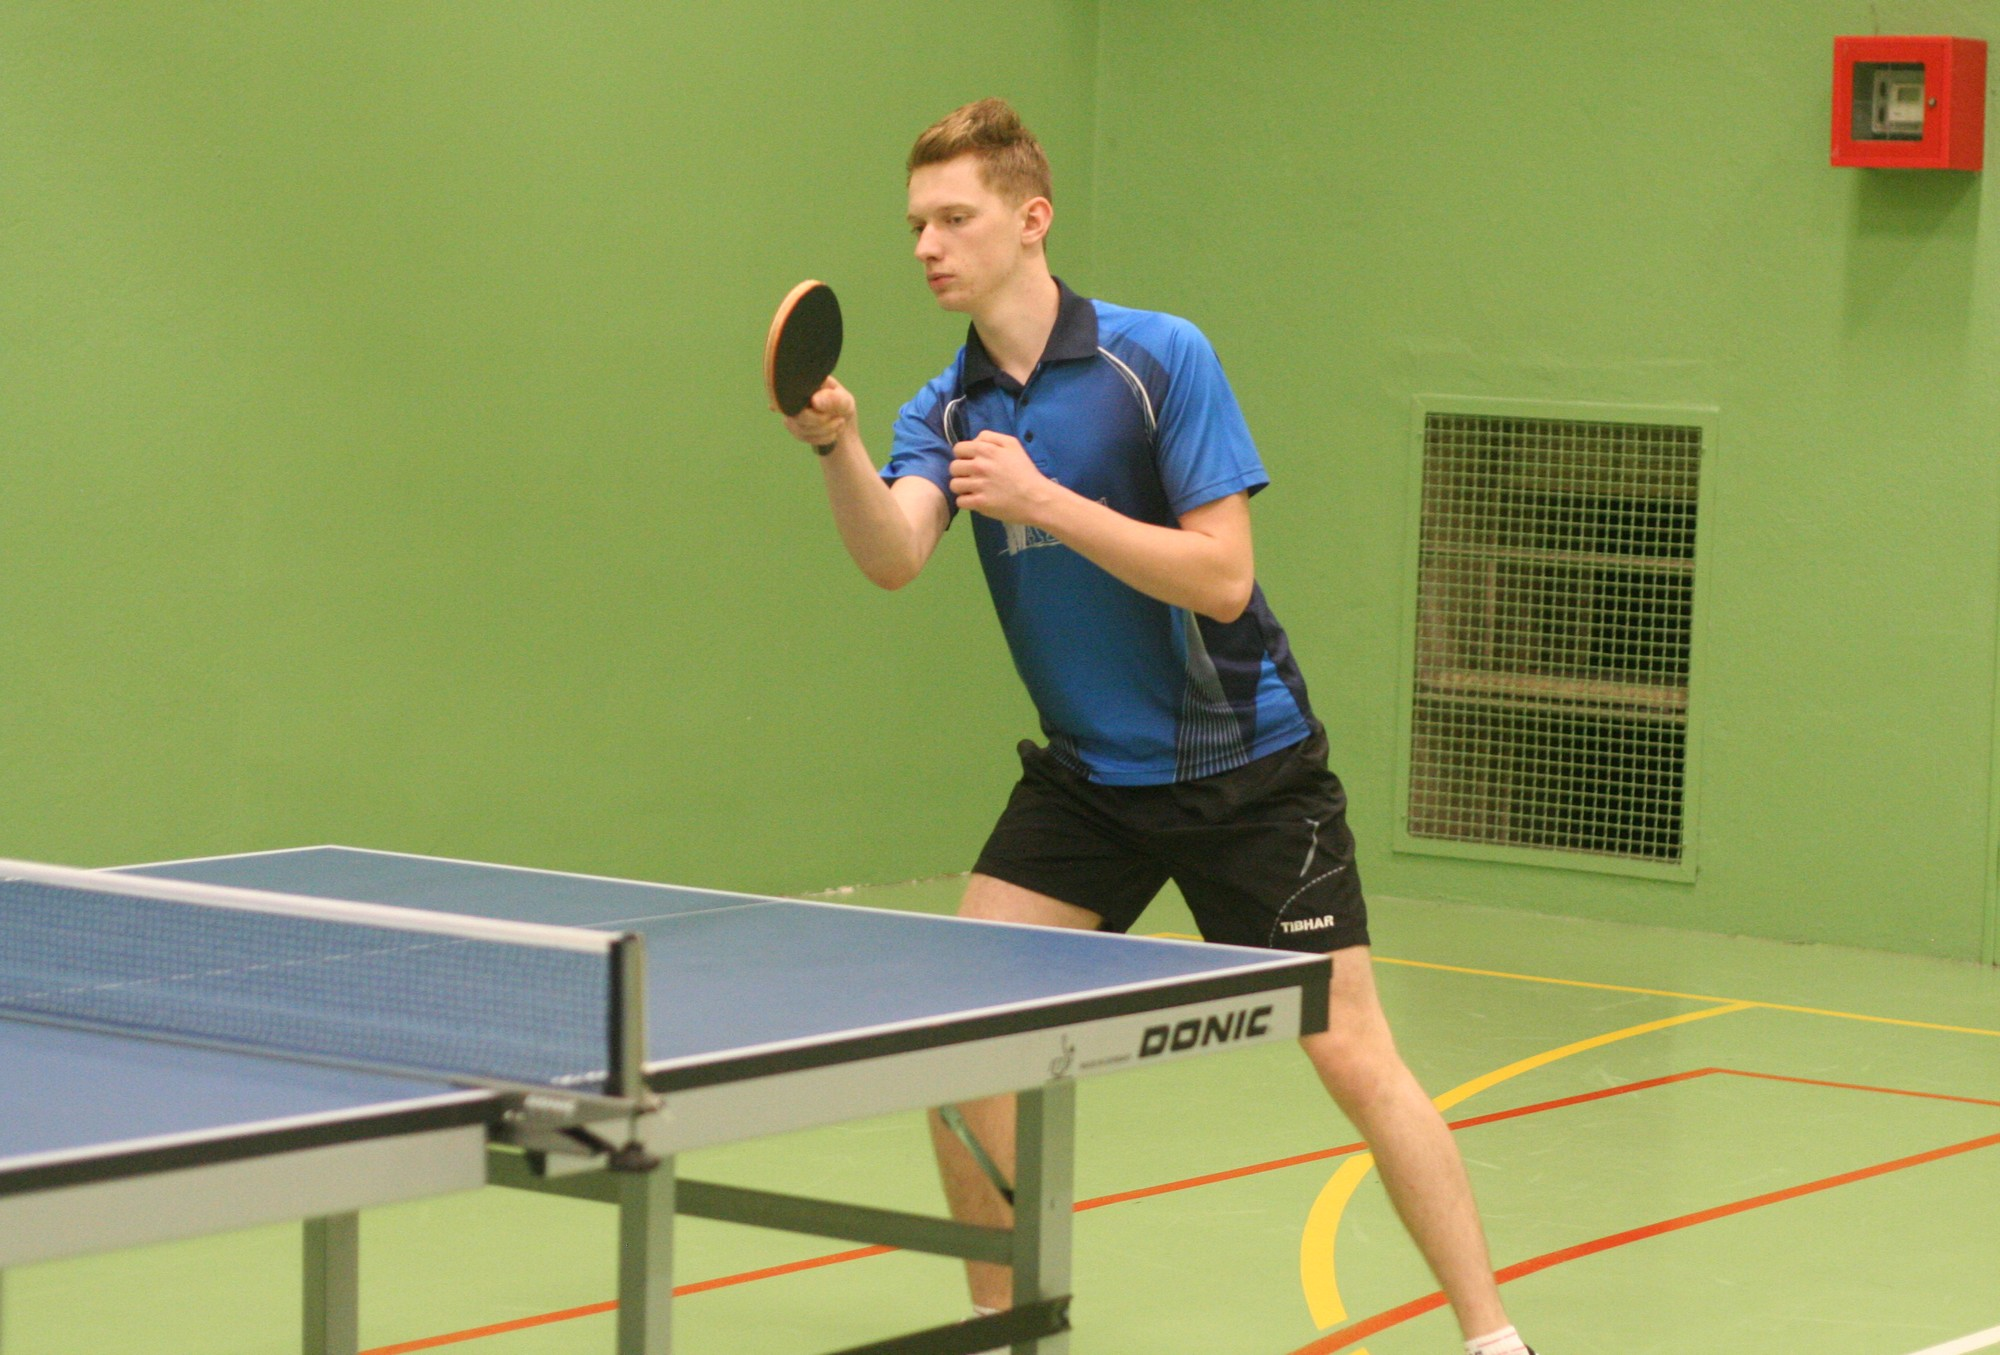 Chagny tennis de table resultats competitions - Resultat tennis de table pro a ...